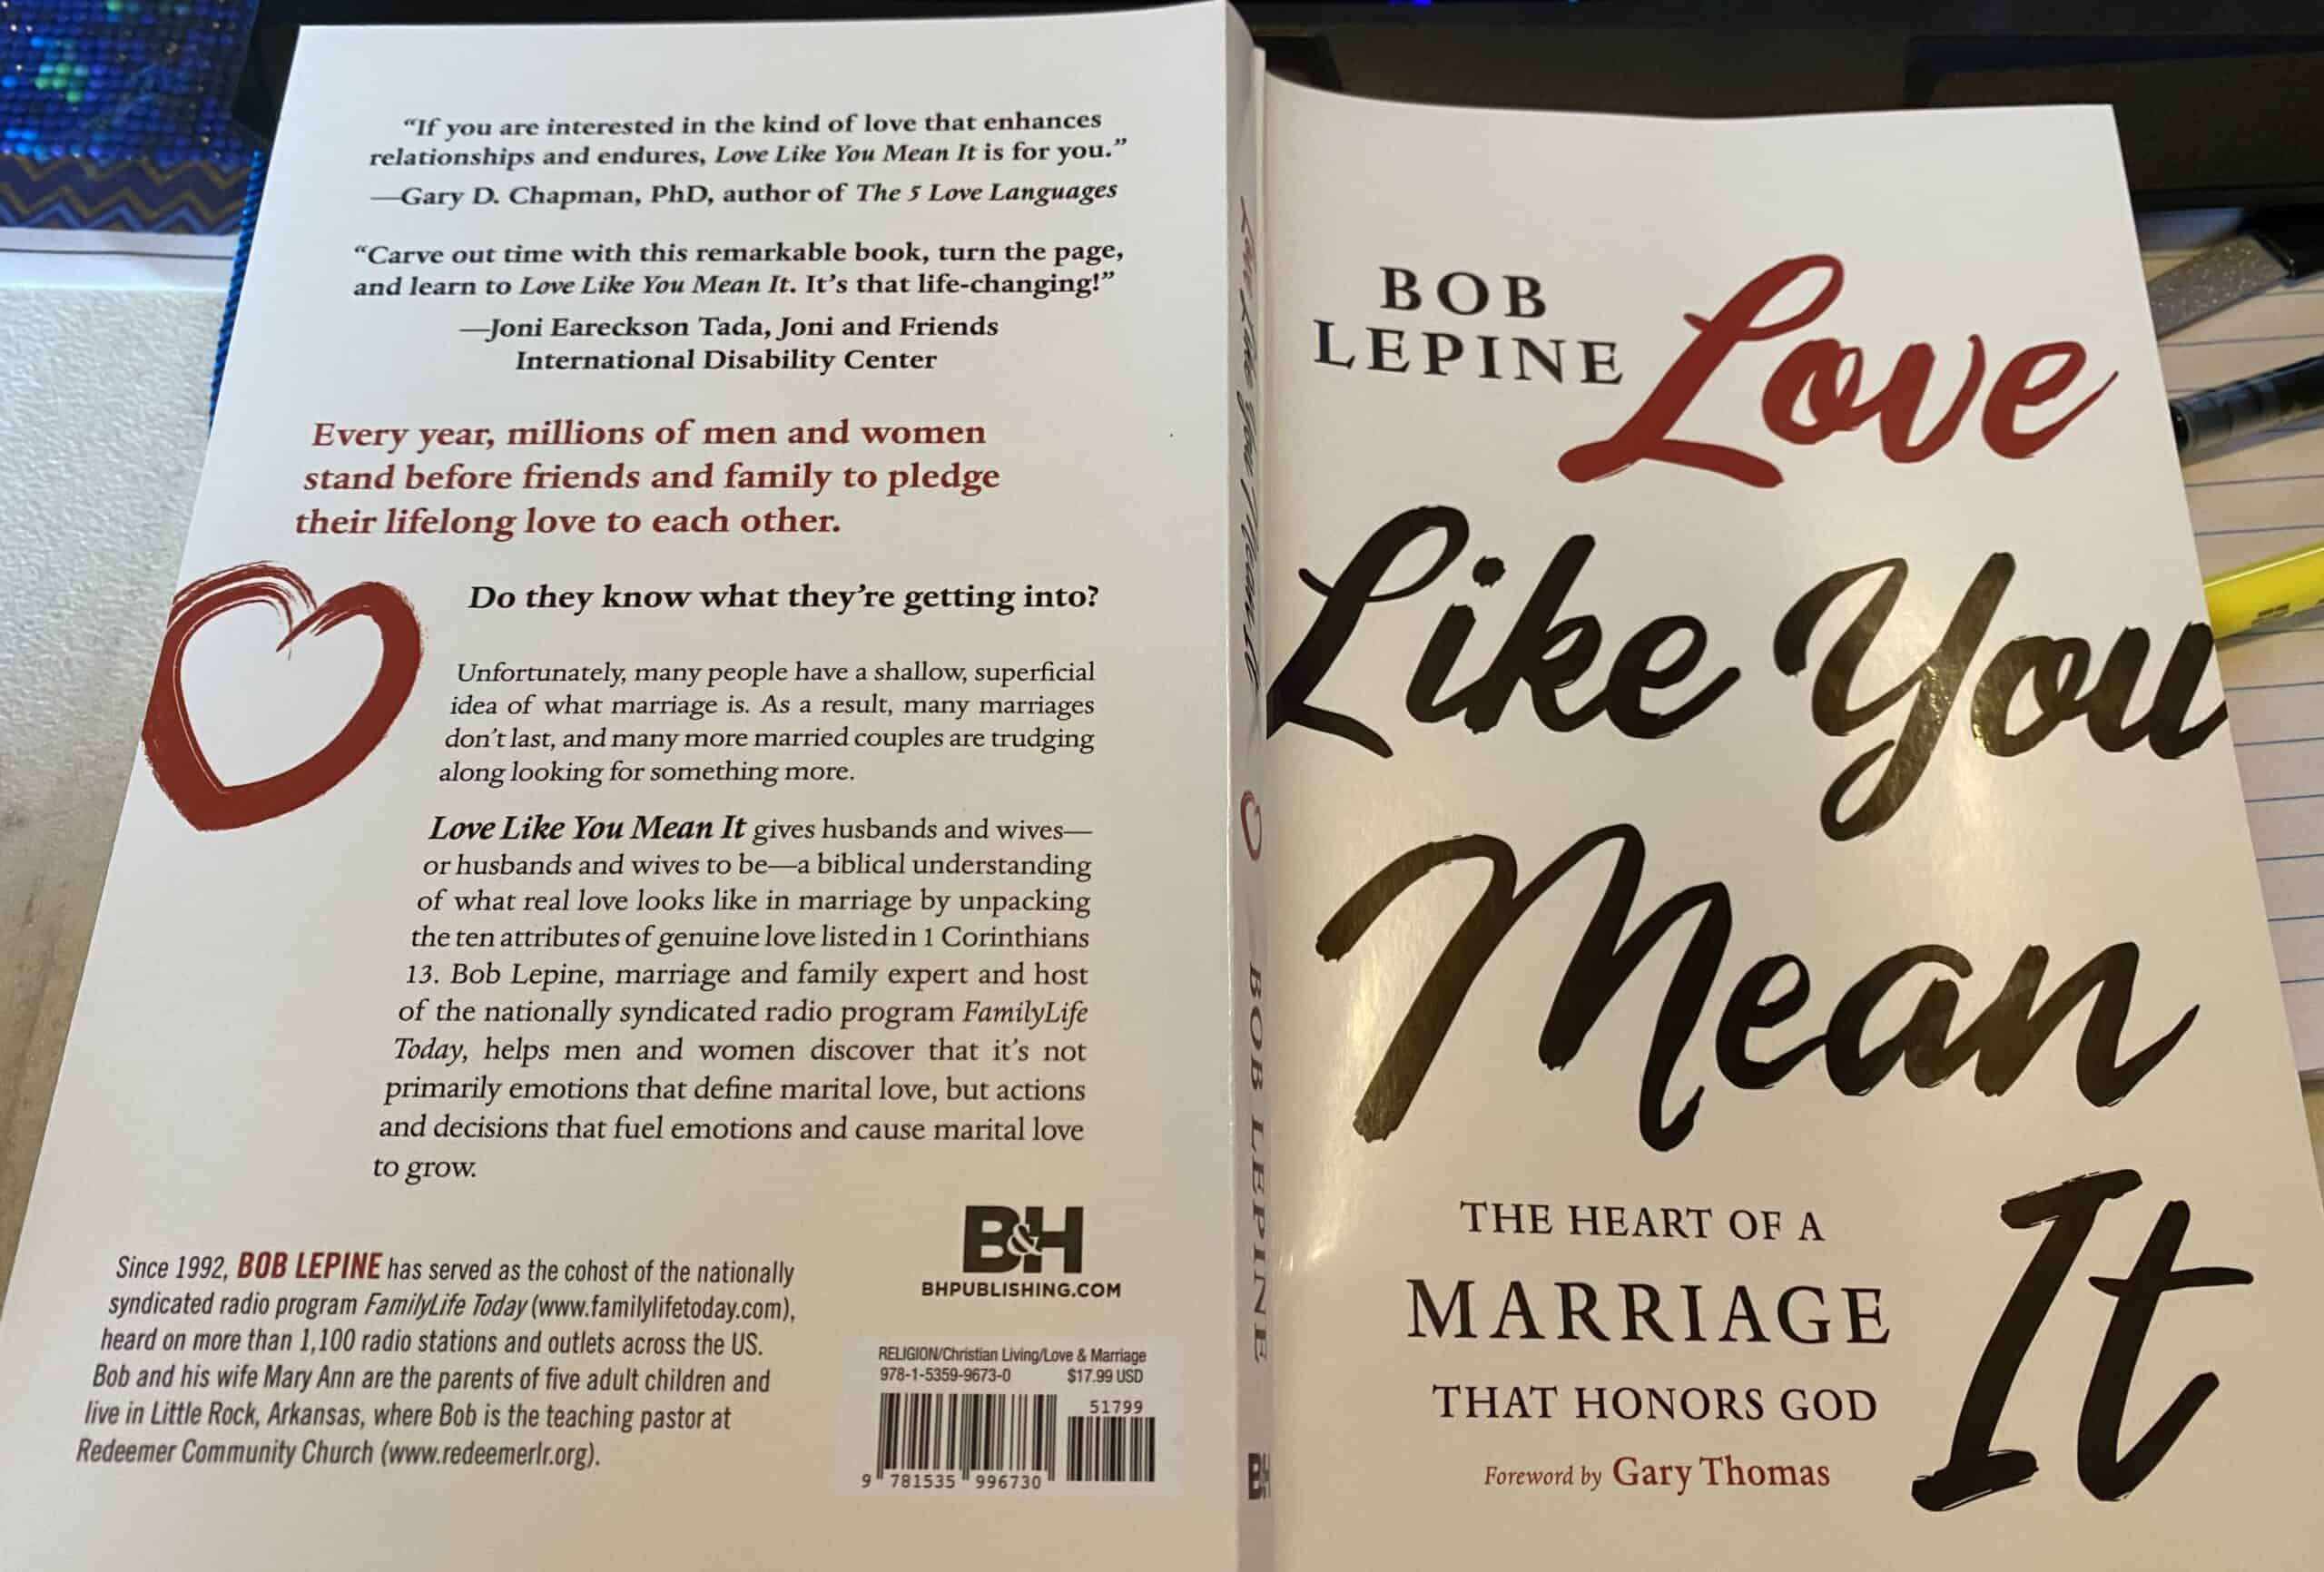 Marriage requires dedication and a ton of love. Read my Love Like You Mean It book review to see why this book is worth reading for married couples. #marriageadvice #marriagelife #sharinglifesmoments #bookreview